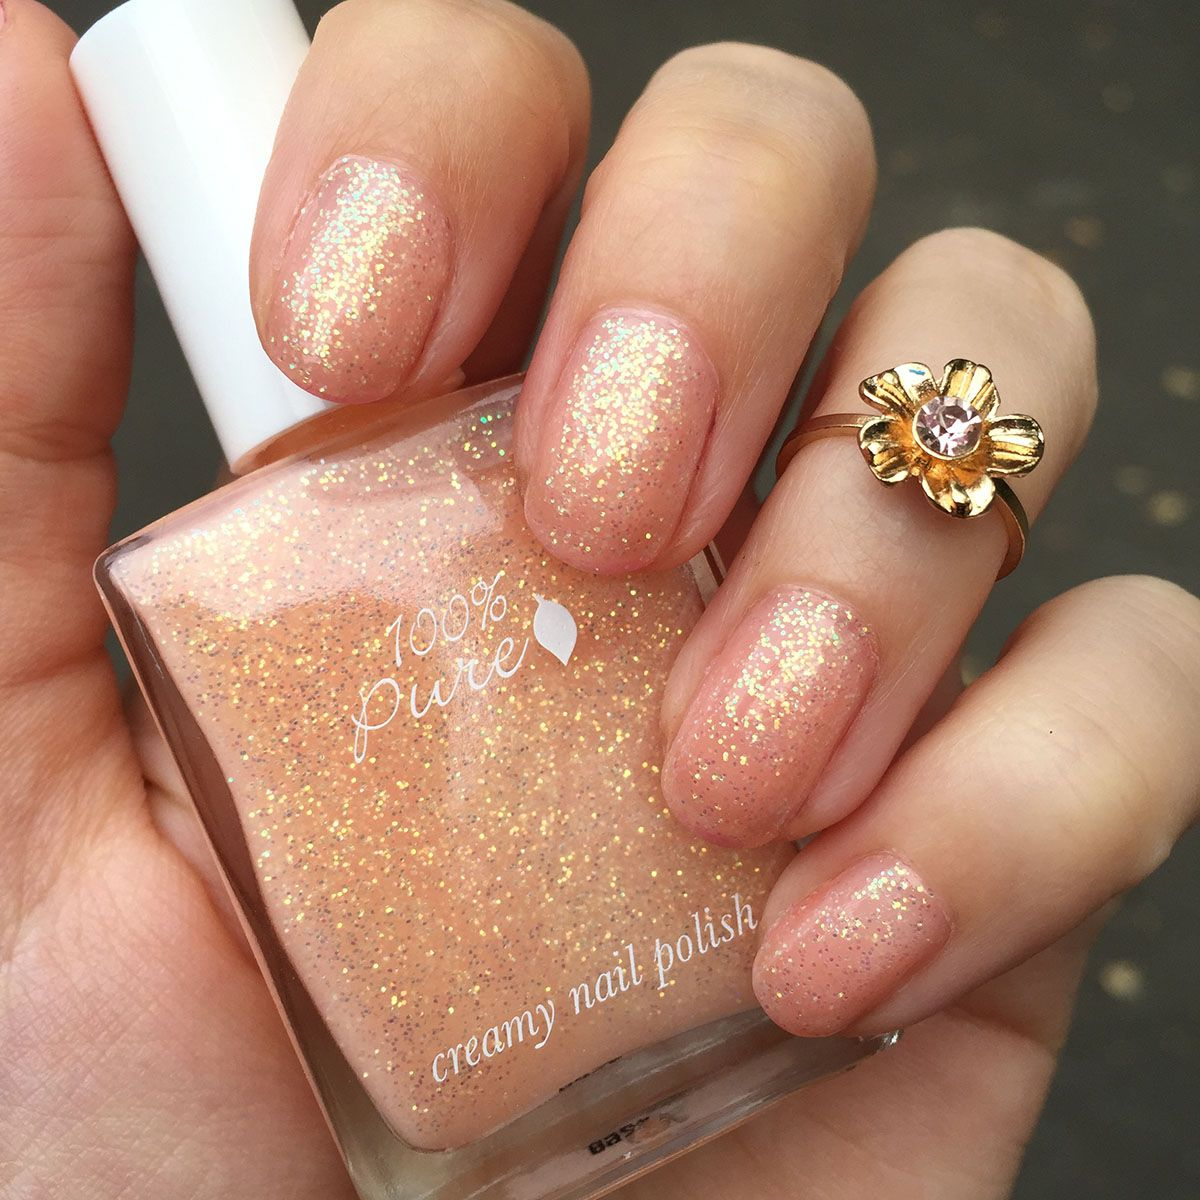 Nails Of The Day 100 Pure S Wedding Vegan Beauty Review Vegan And Cruelty Free Beauty Fashion Food And L Green Nails Nail Polish Wedding Nail Polish